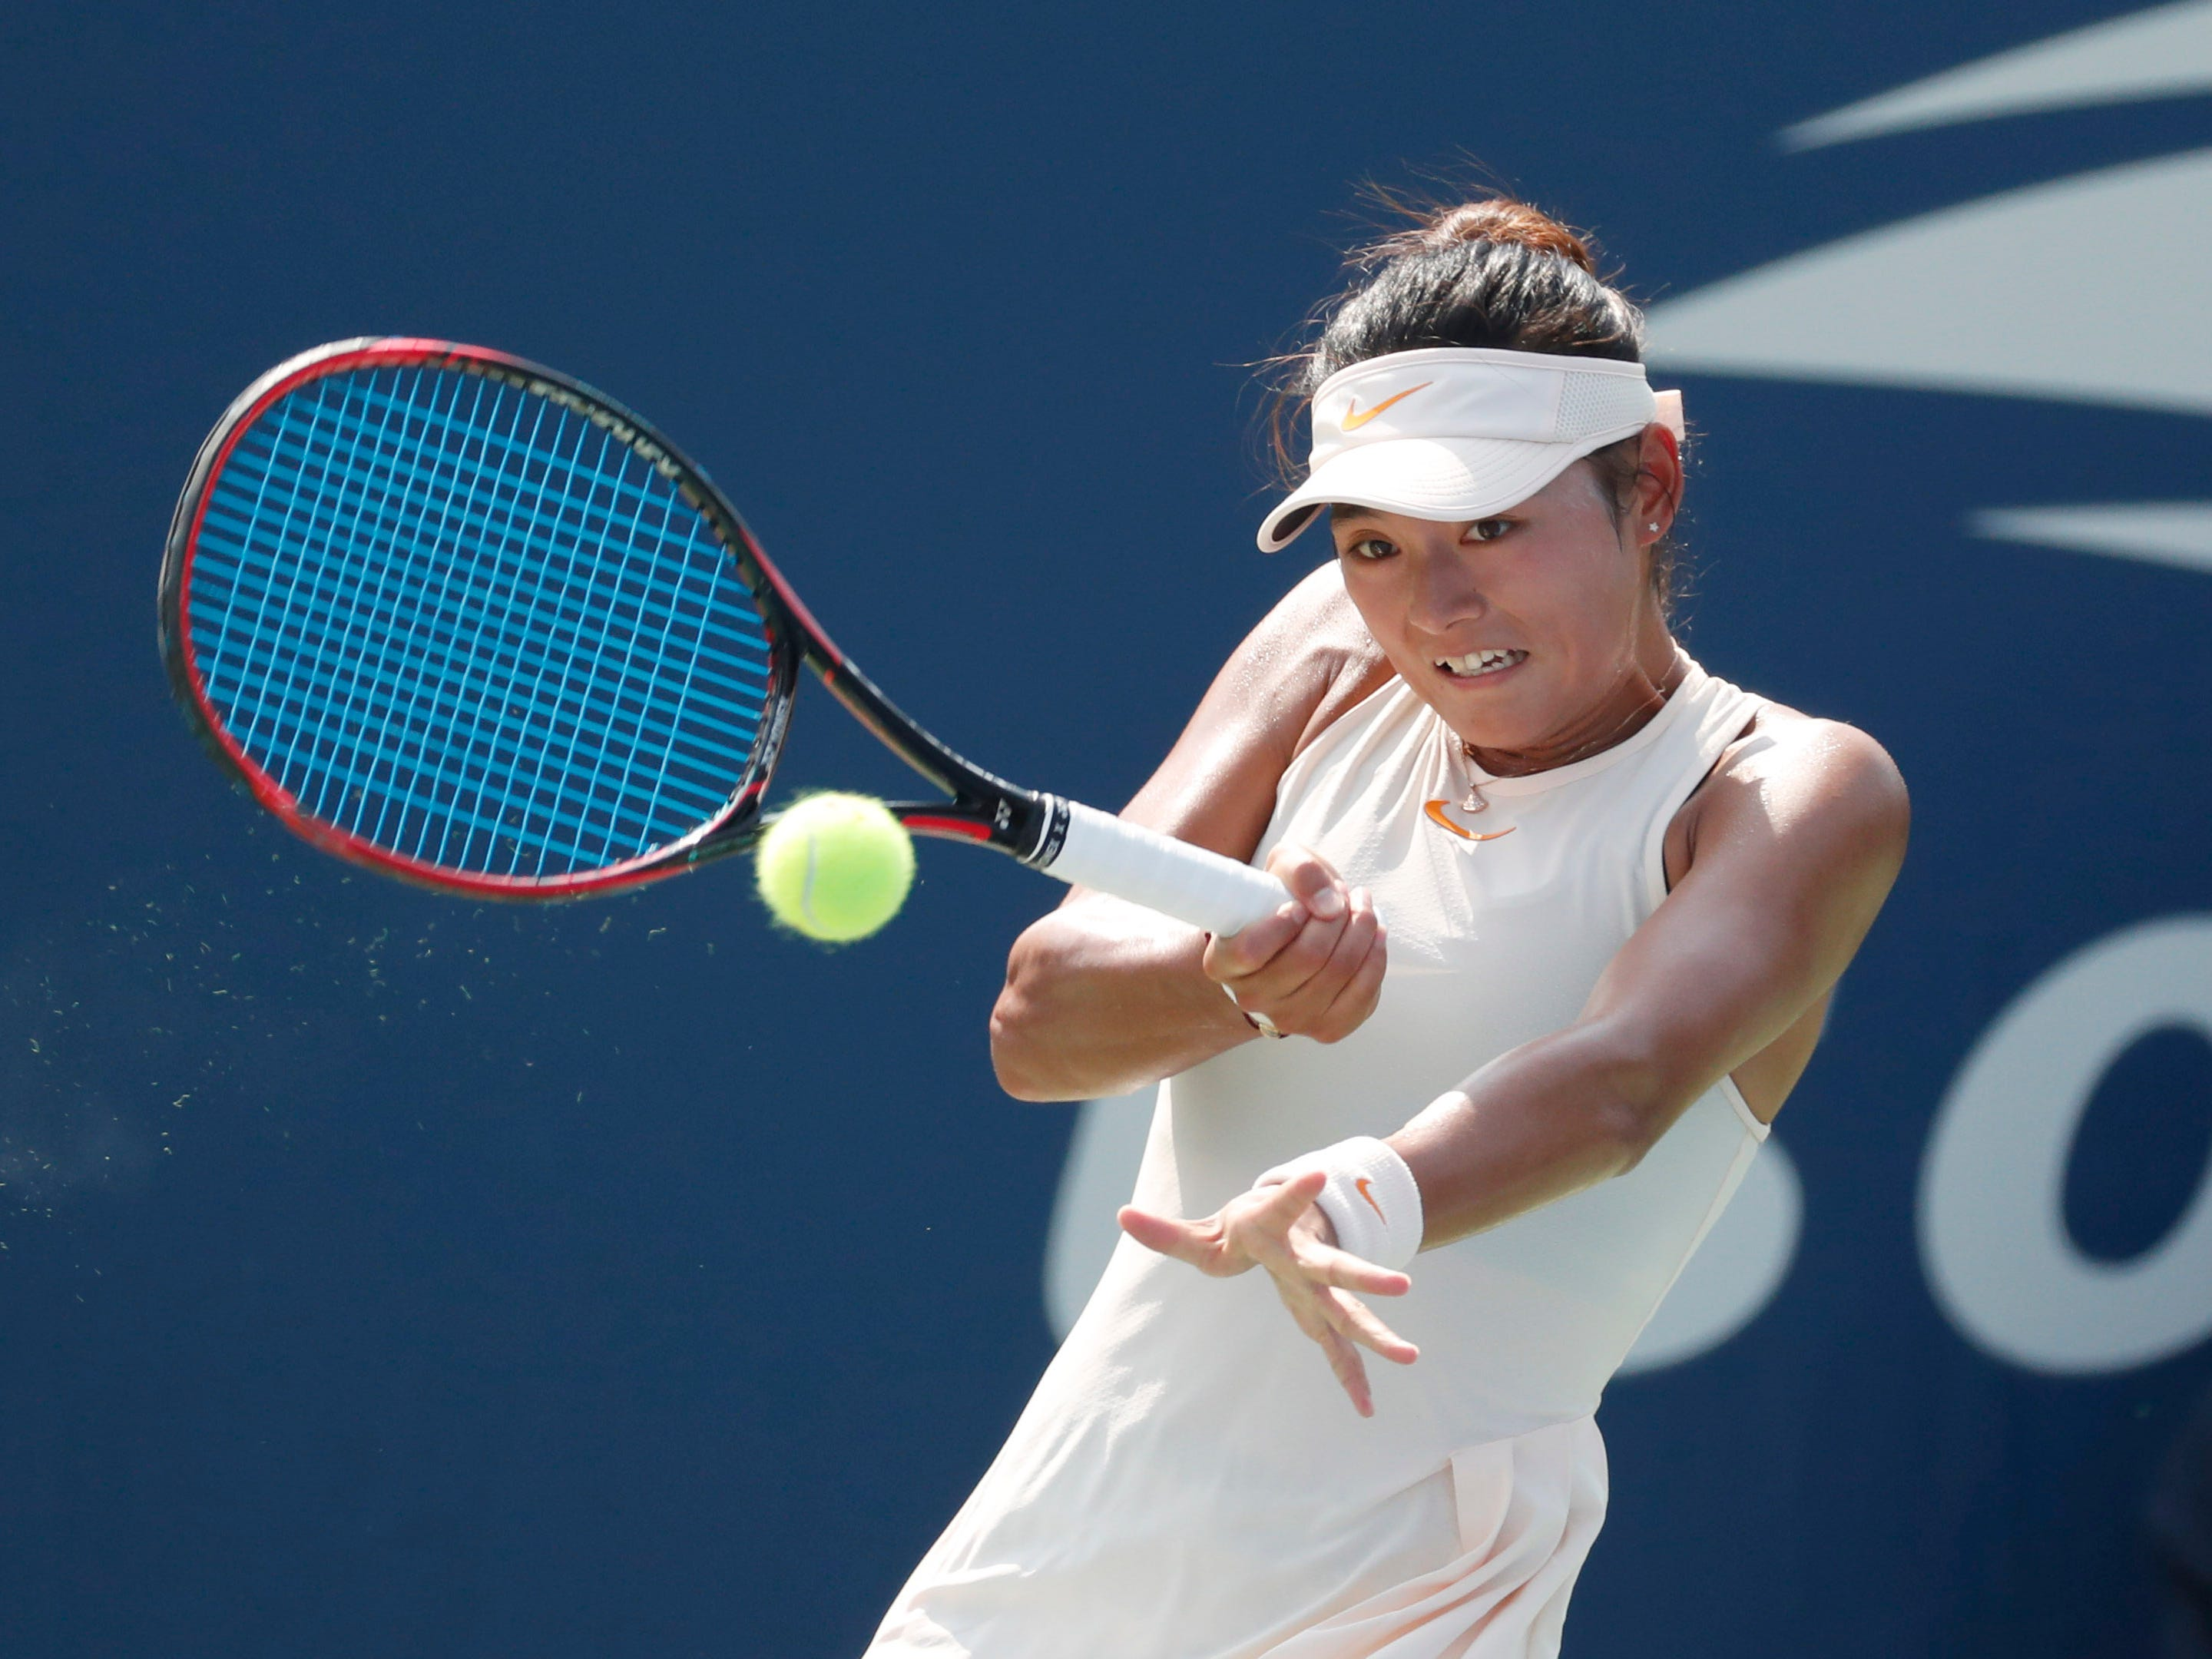 Yafan Wang of China returns a shot against Anna Karolina Schmiedlova.